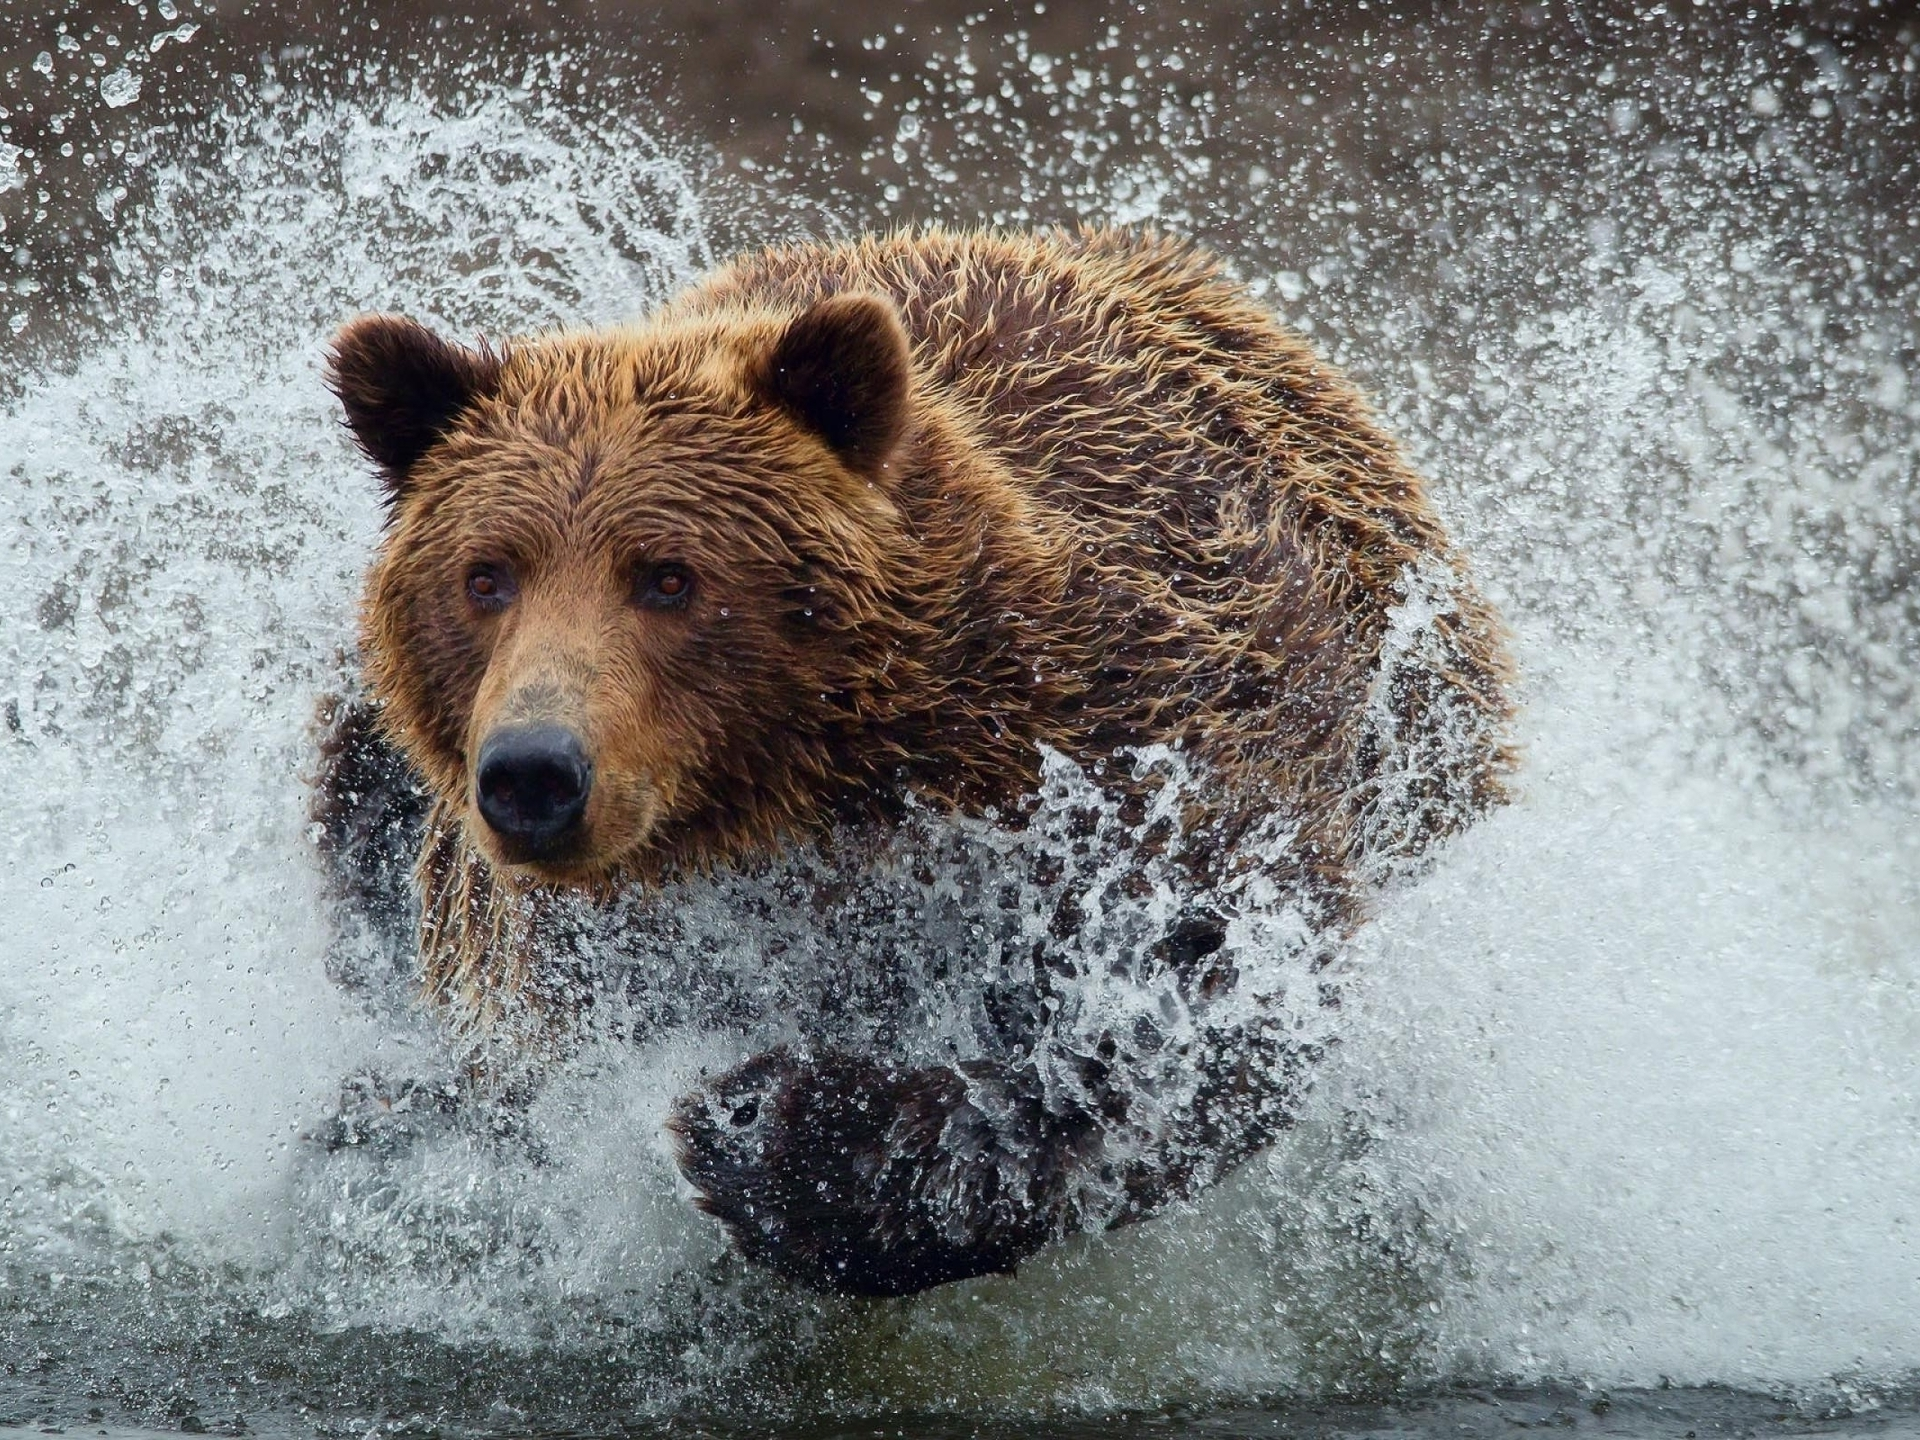 Water animals wet grizzly bears running bears wild animals (1920x1440)